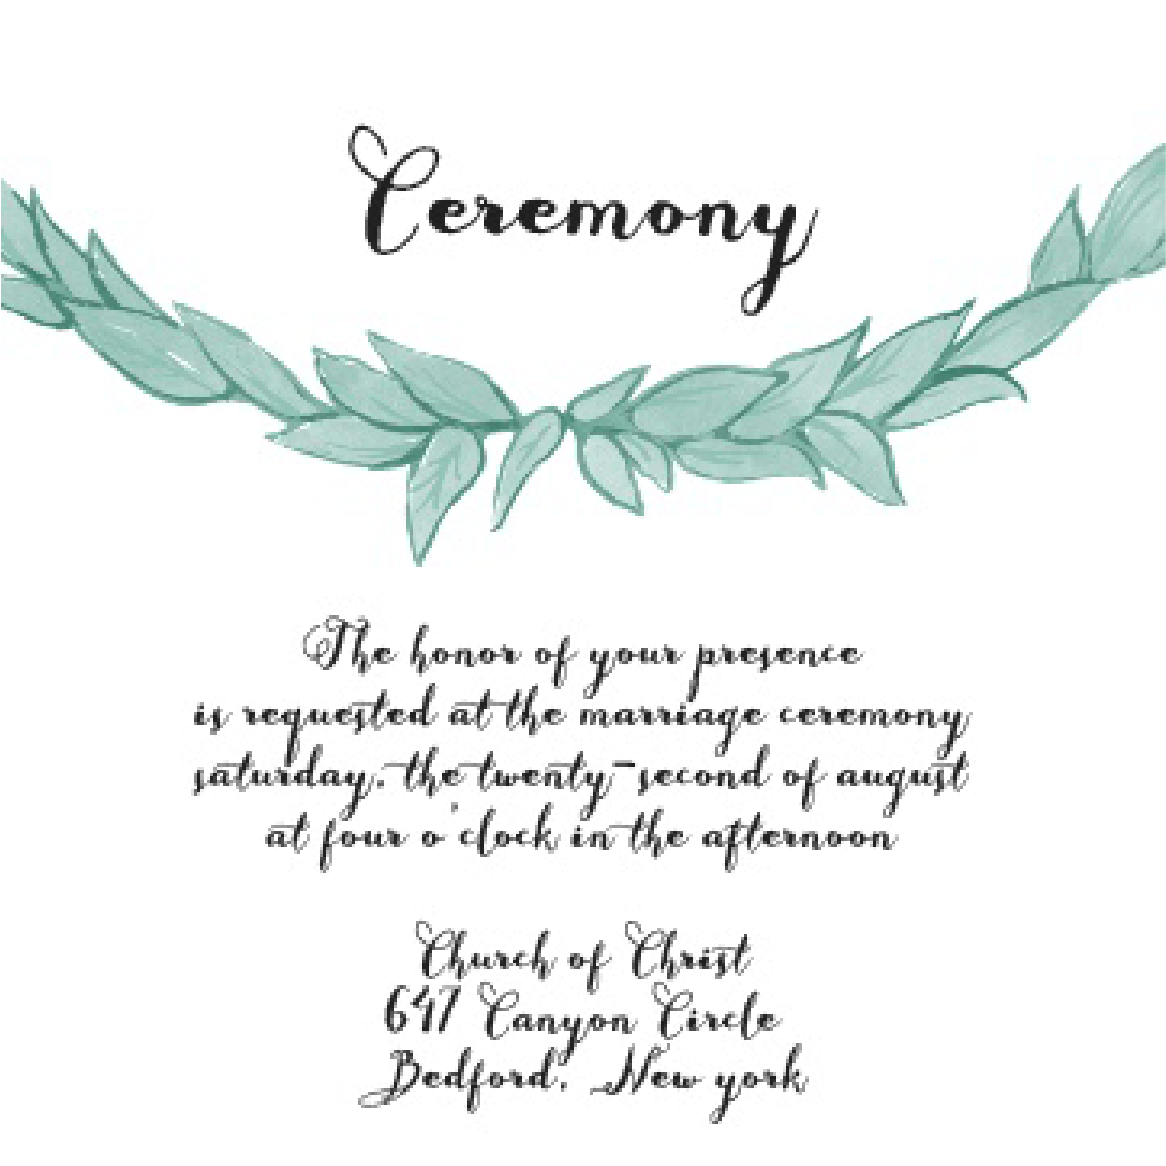 Ceremony Card Image